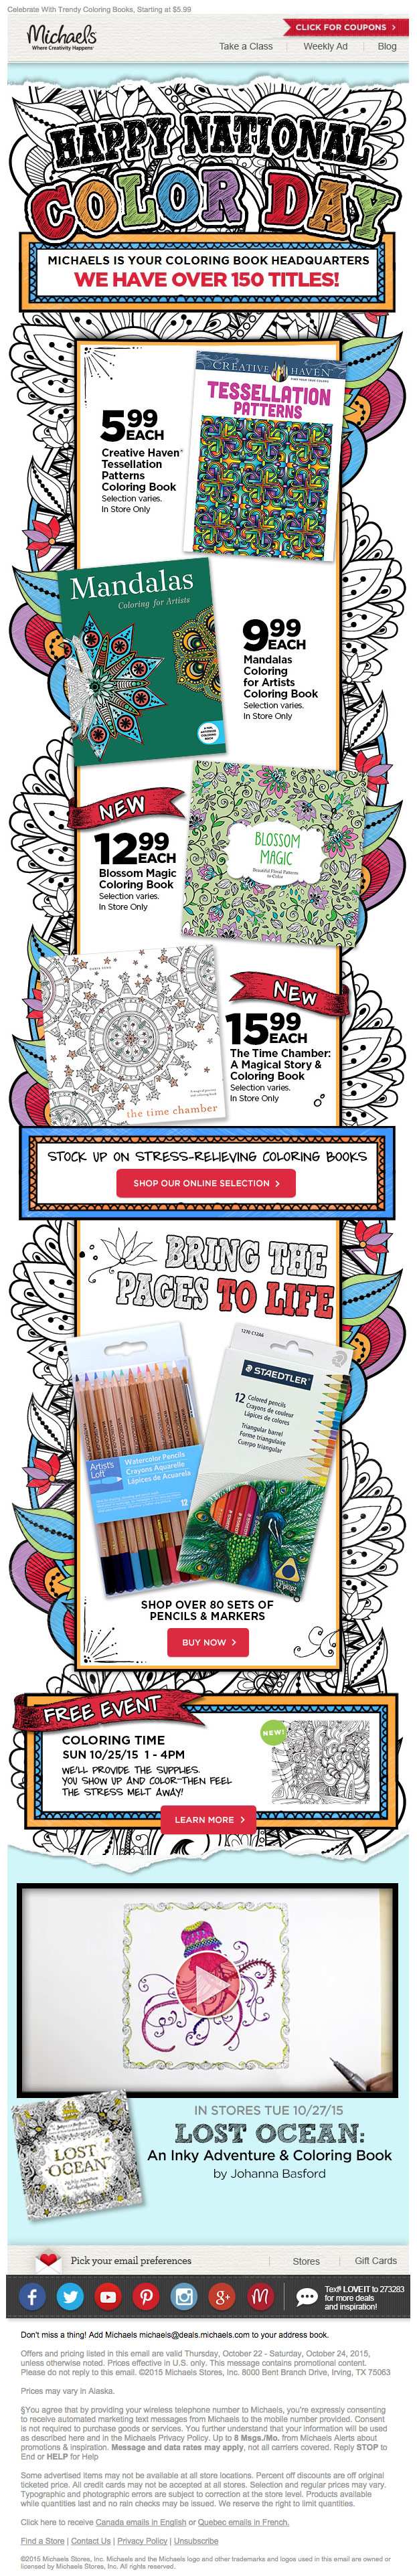 Michaels Sheds Light On National Color Day In This Email The Design Receives An A My Book I Love Incorporation Of Coloring Page Doodles